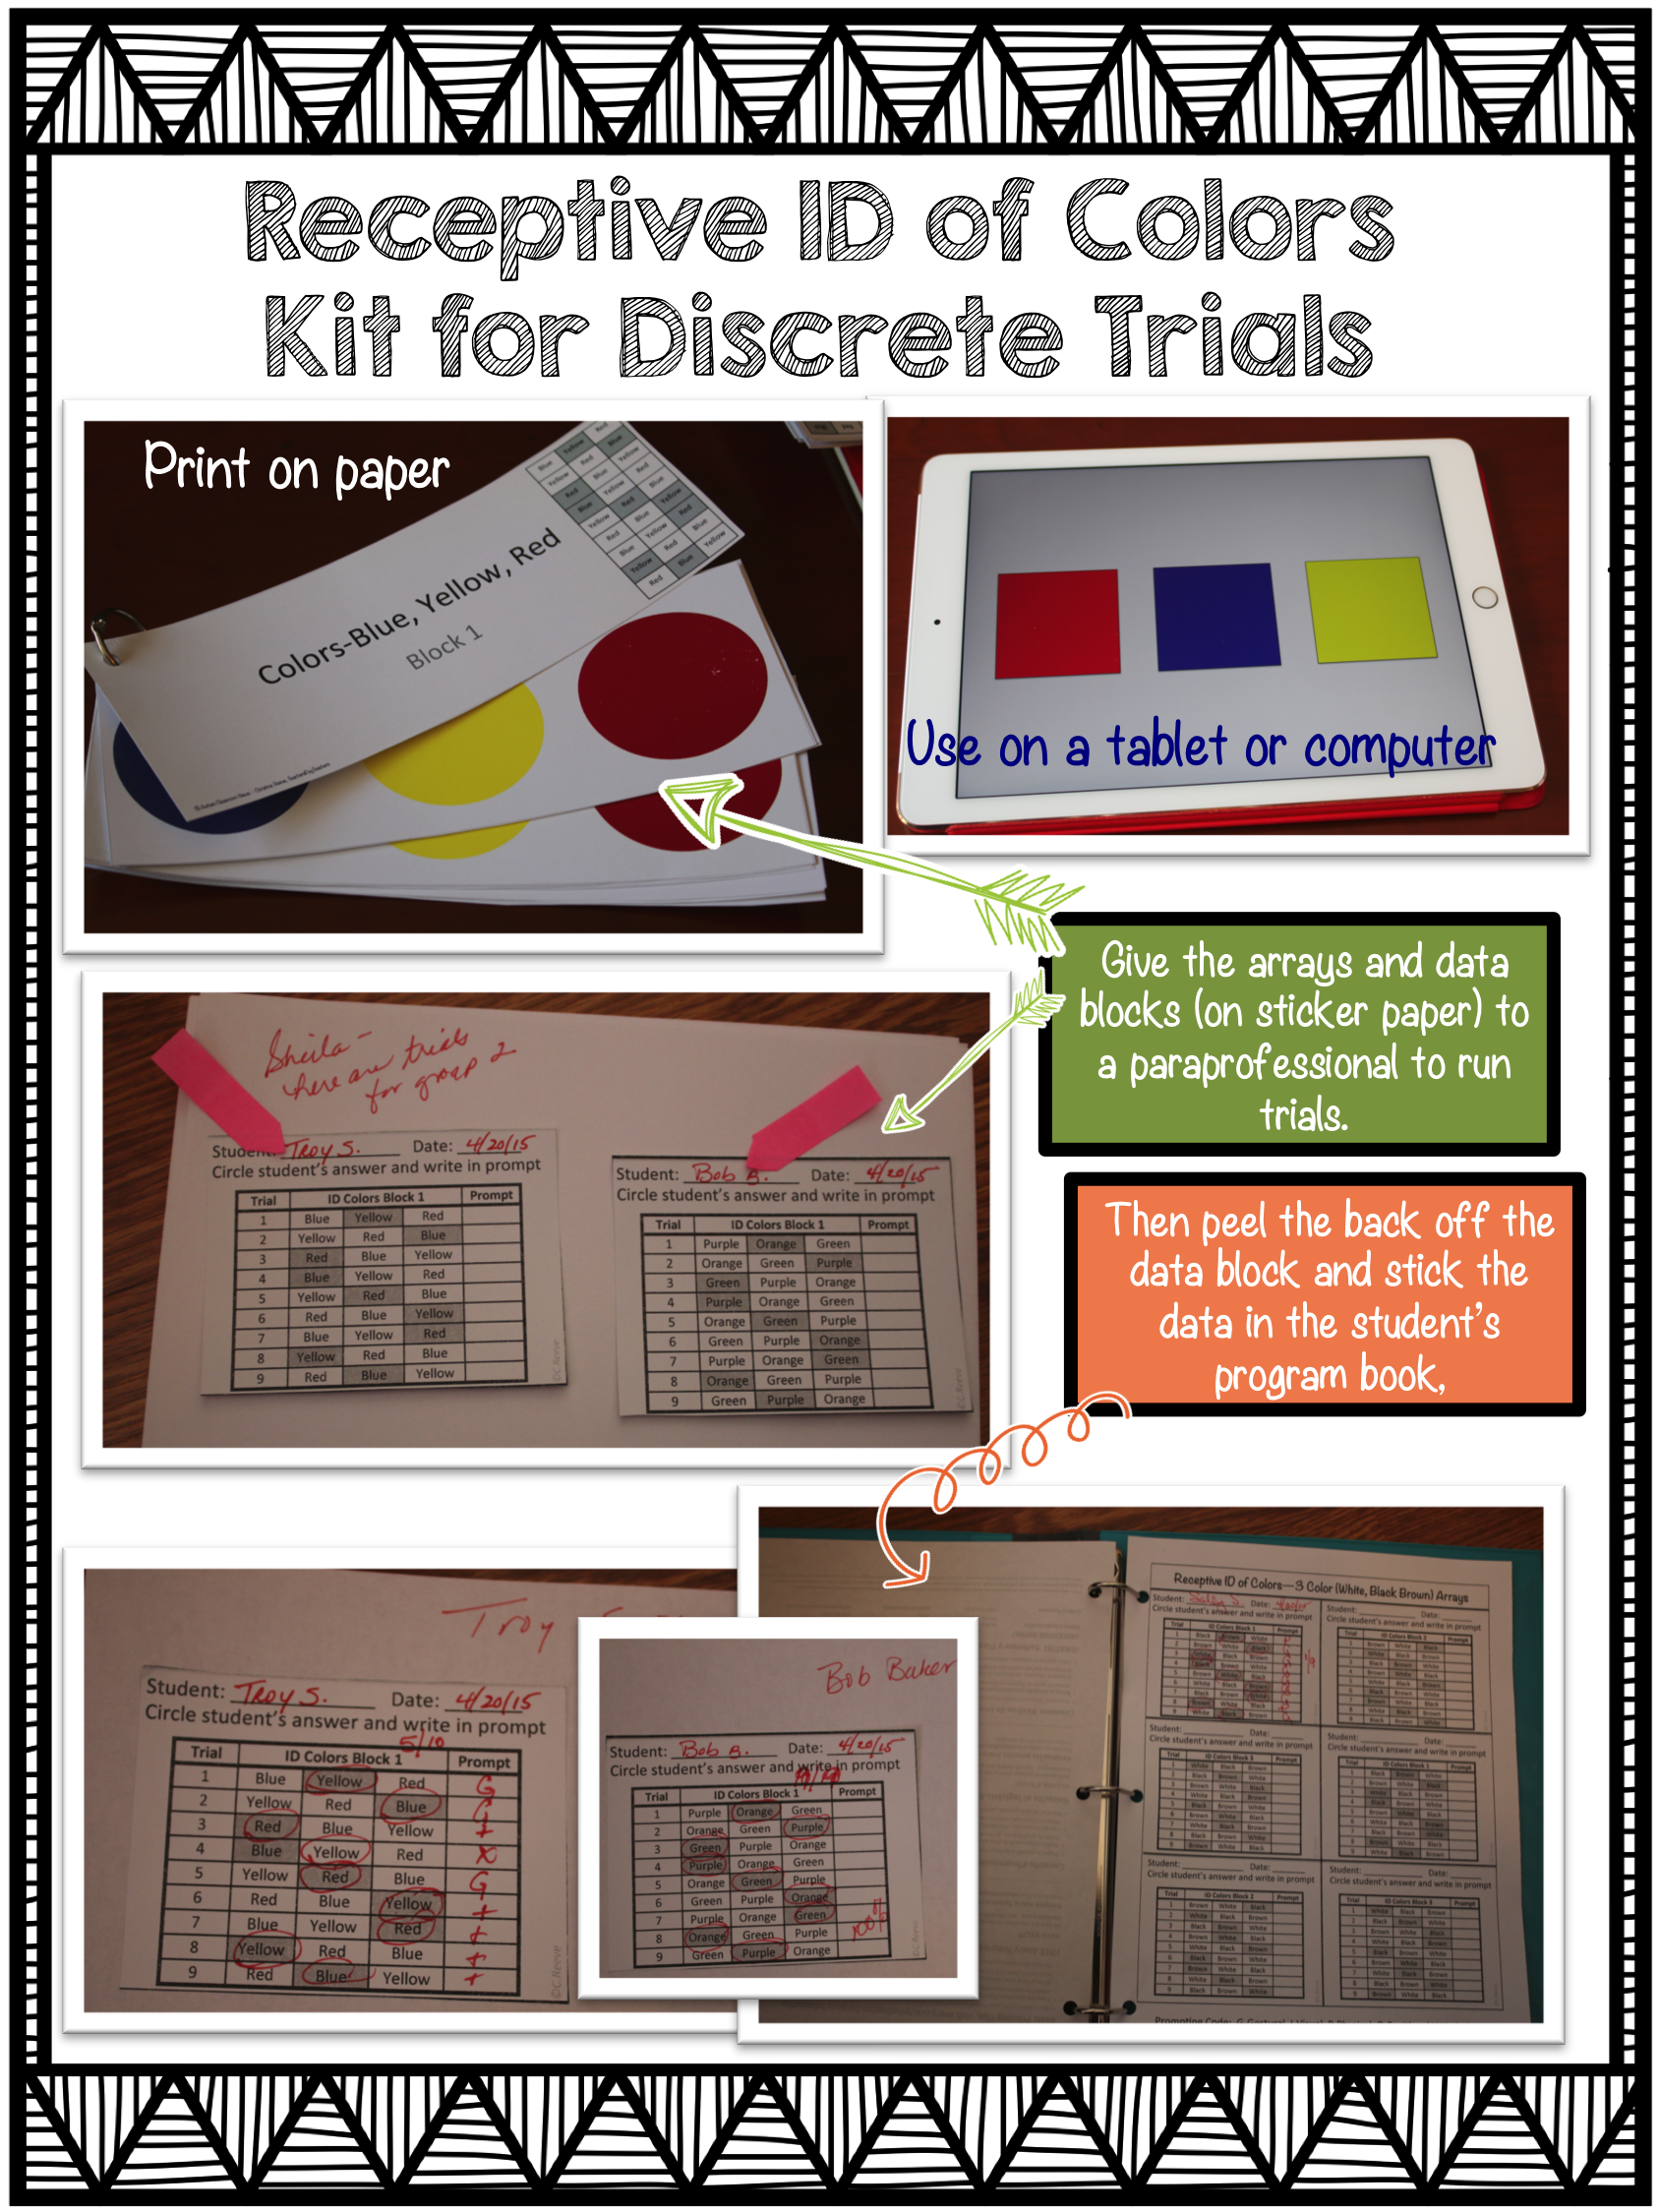 Free Sample Discrete Trial Kit Receptive Id Of Colors